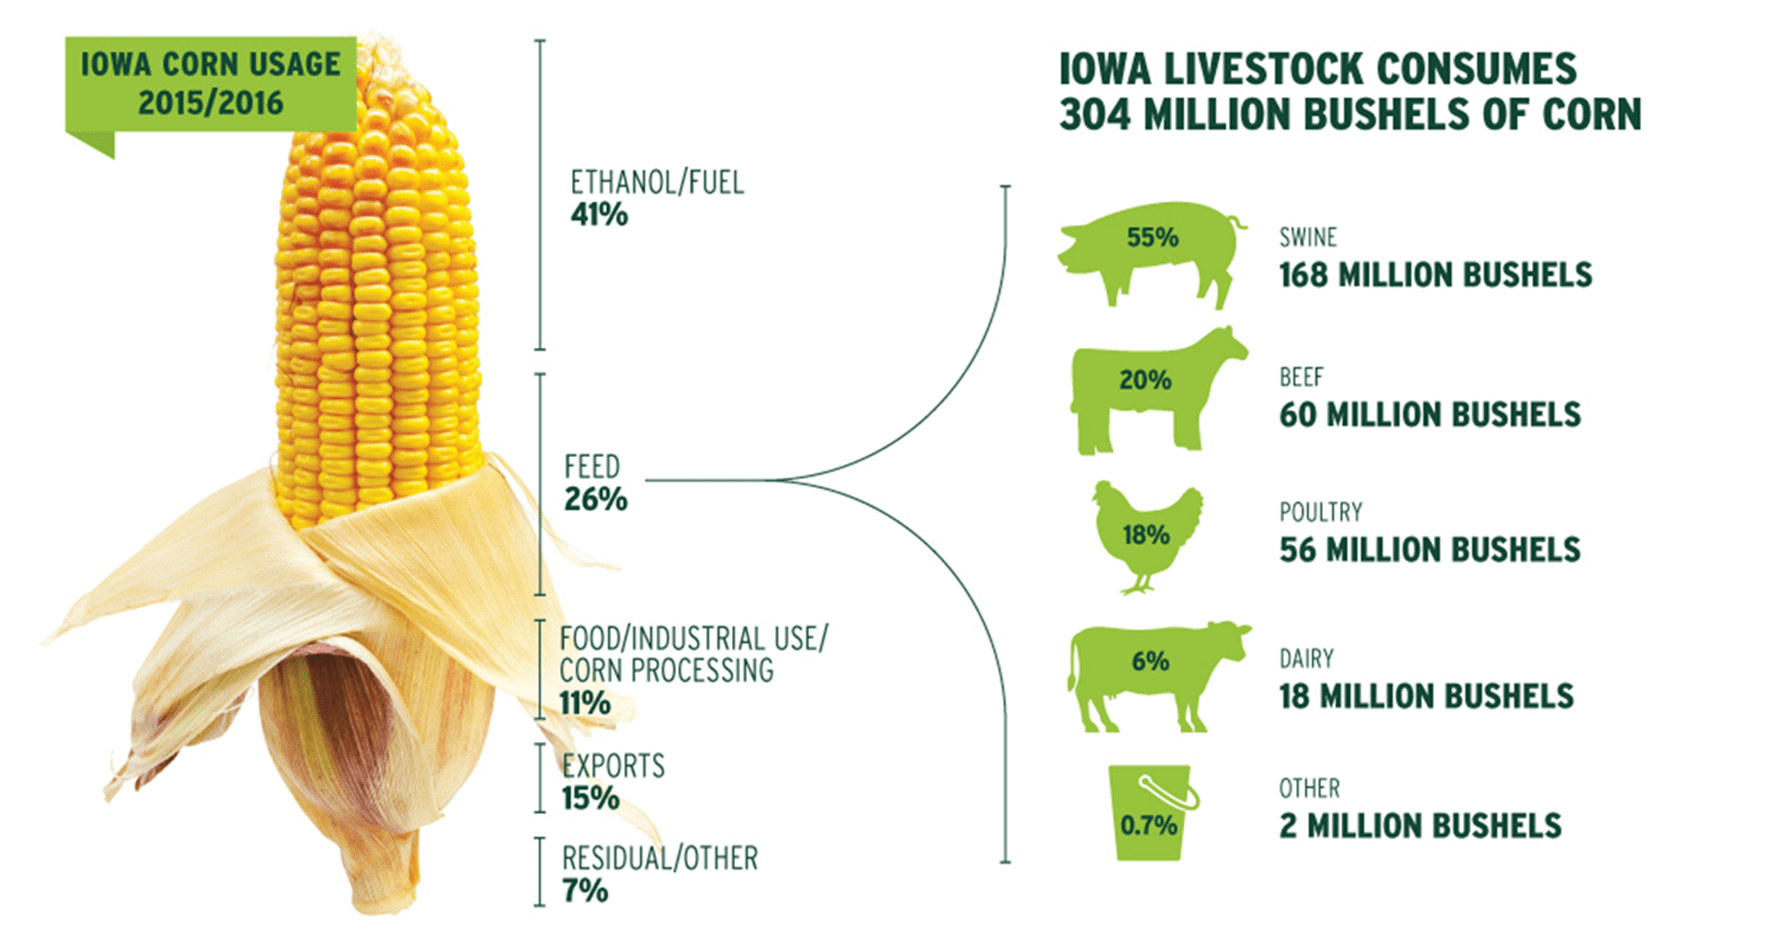 How is Iowa Corn used?